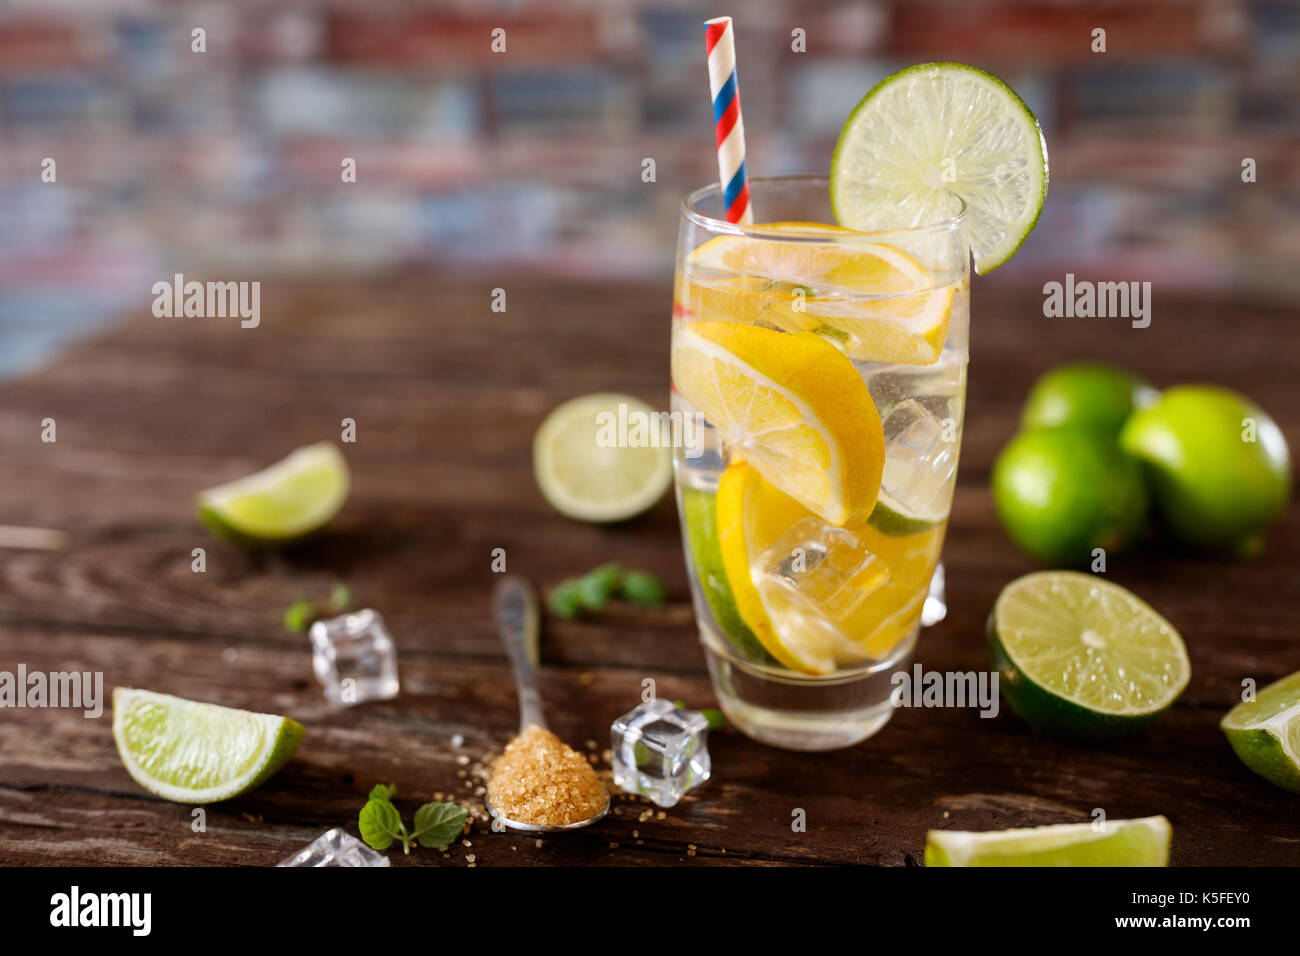 fresh cocktail citrus fruit with water dieting in glass- healthy lifestyle concept - Stock Image